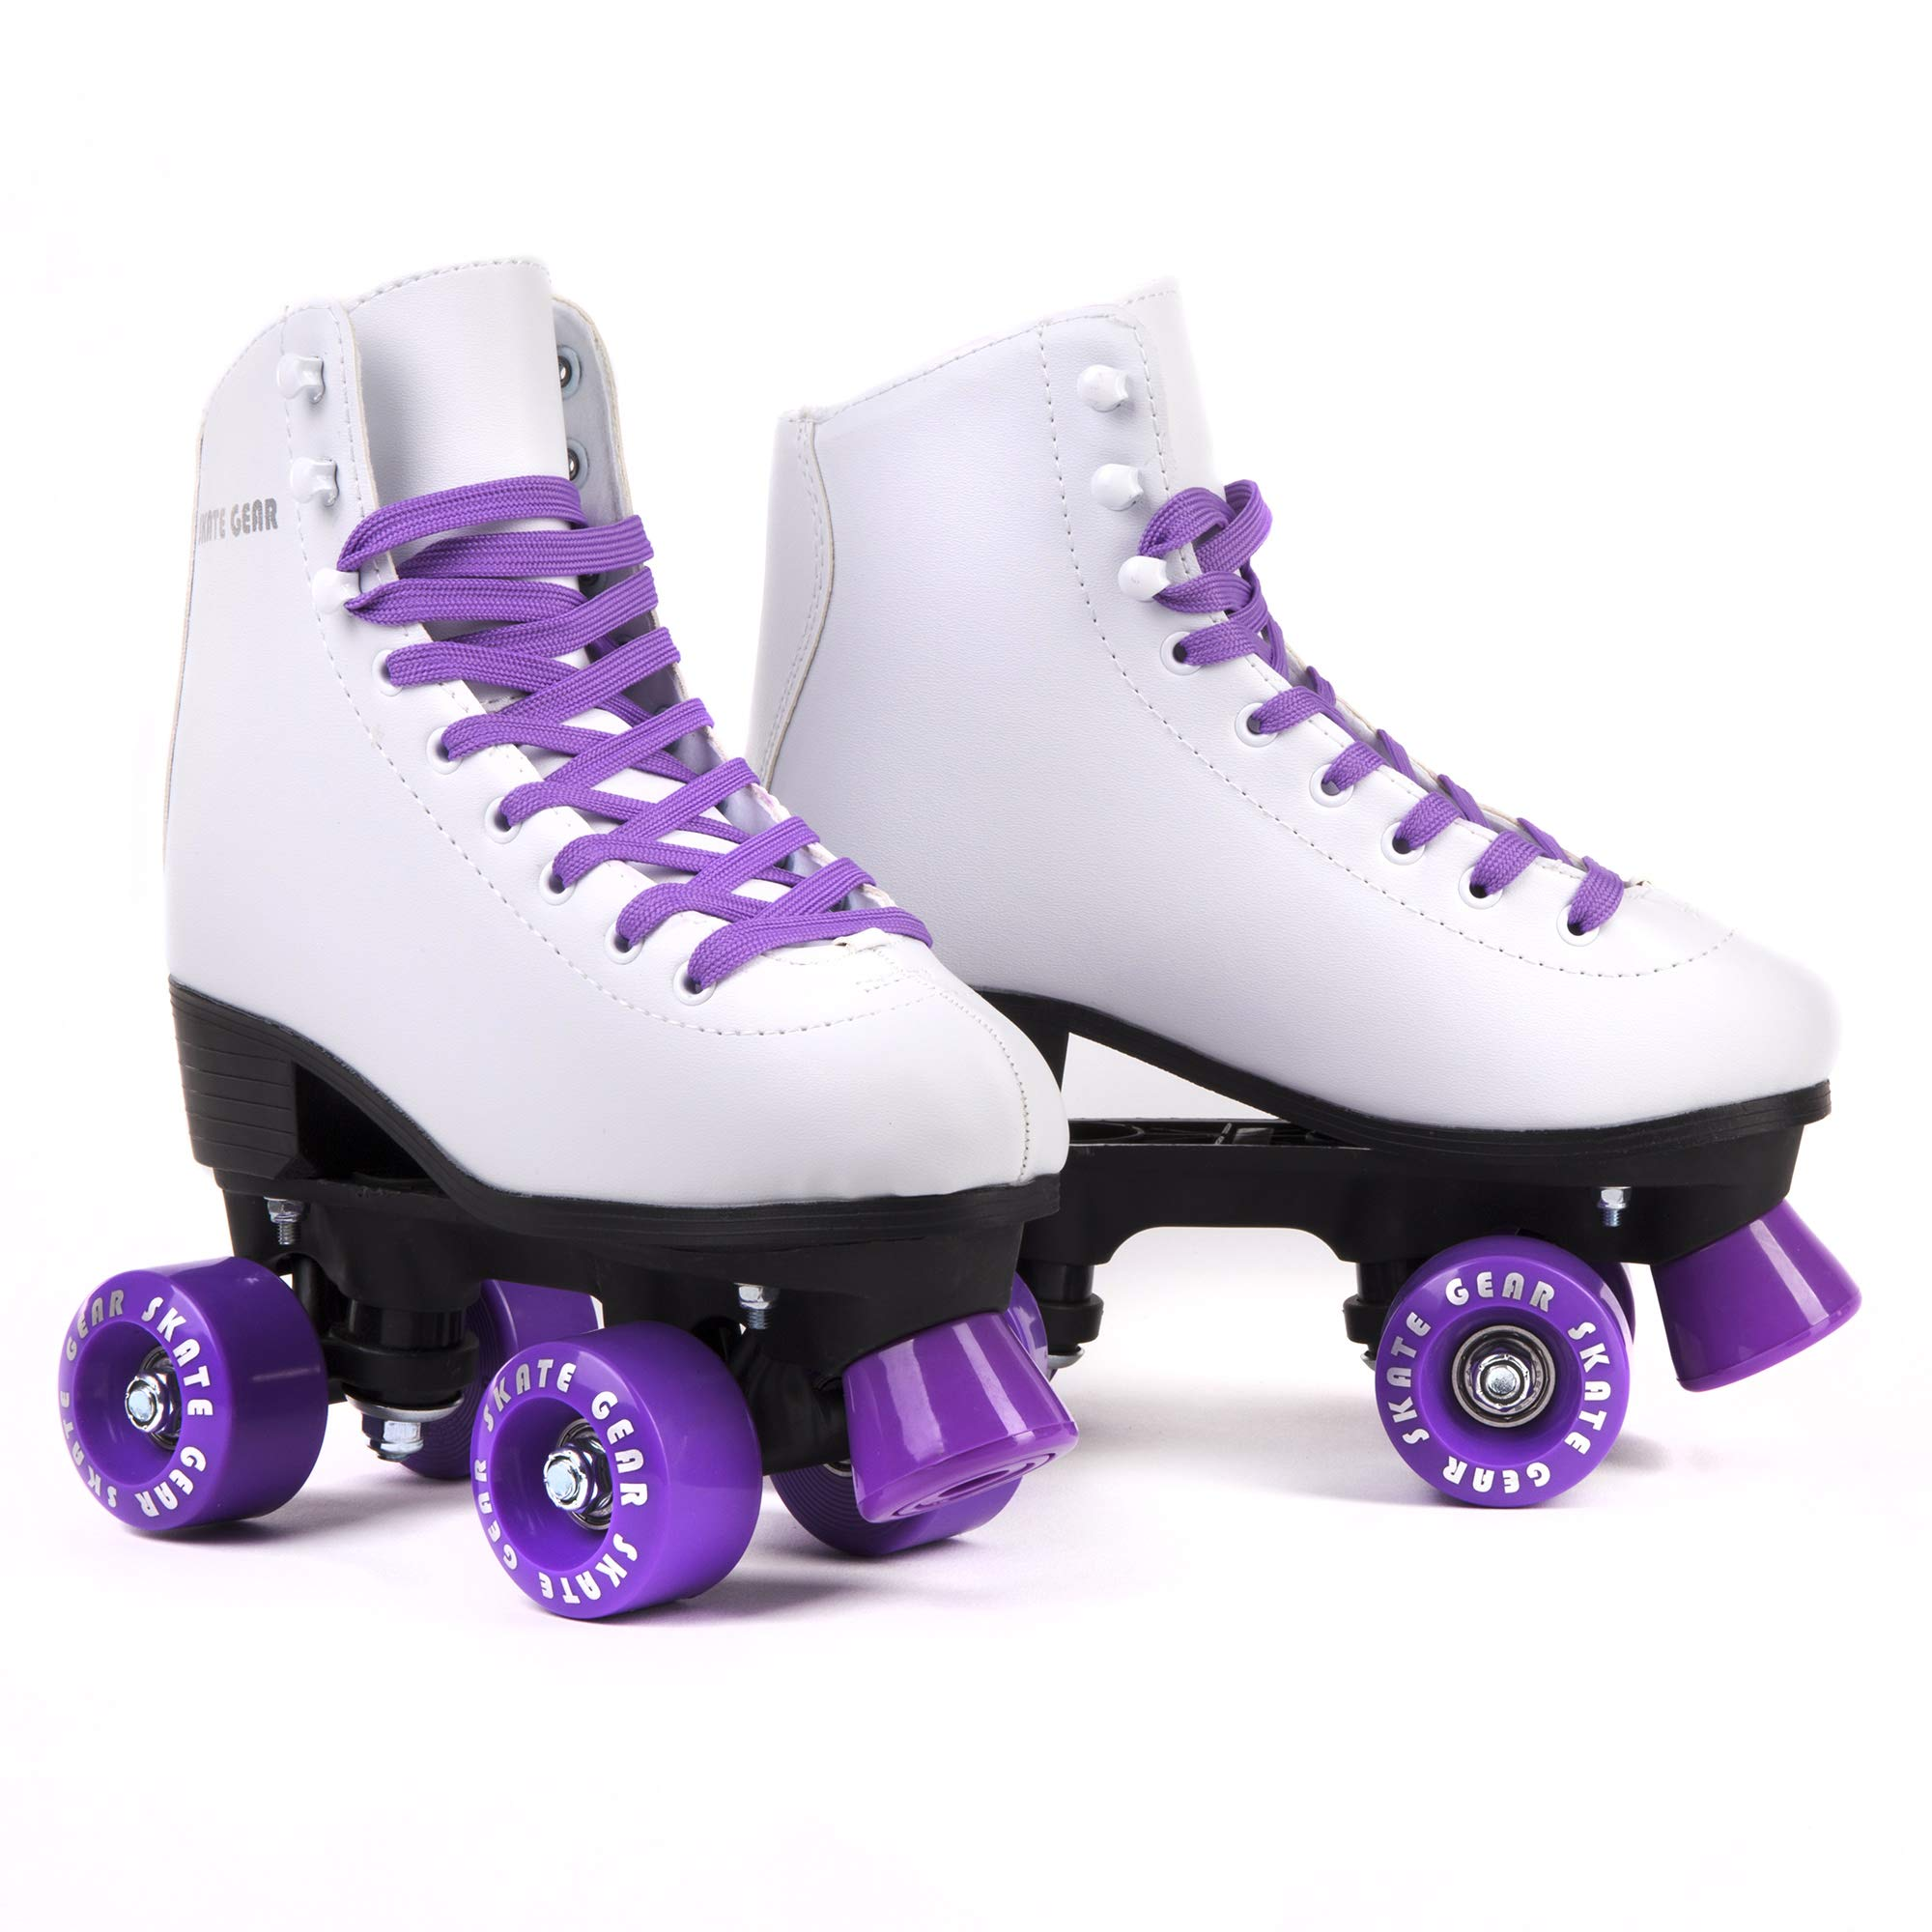 C SEVEN Classic Retro Roller Skates for Kids and Adults (Purple, Men's 8 / Women's 9) by C SEVEN